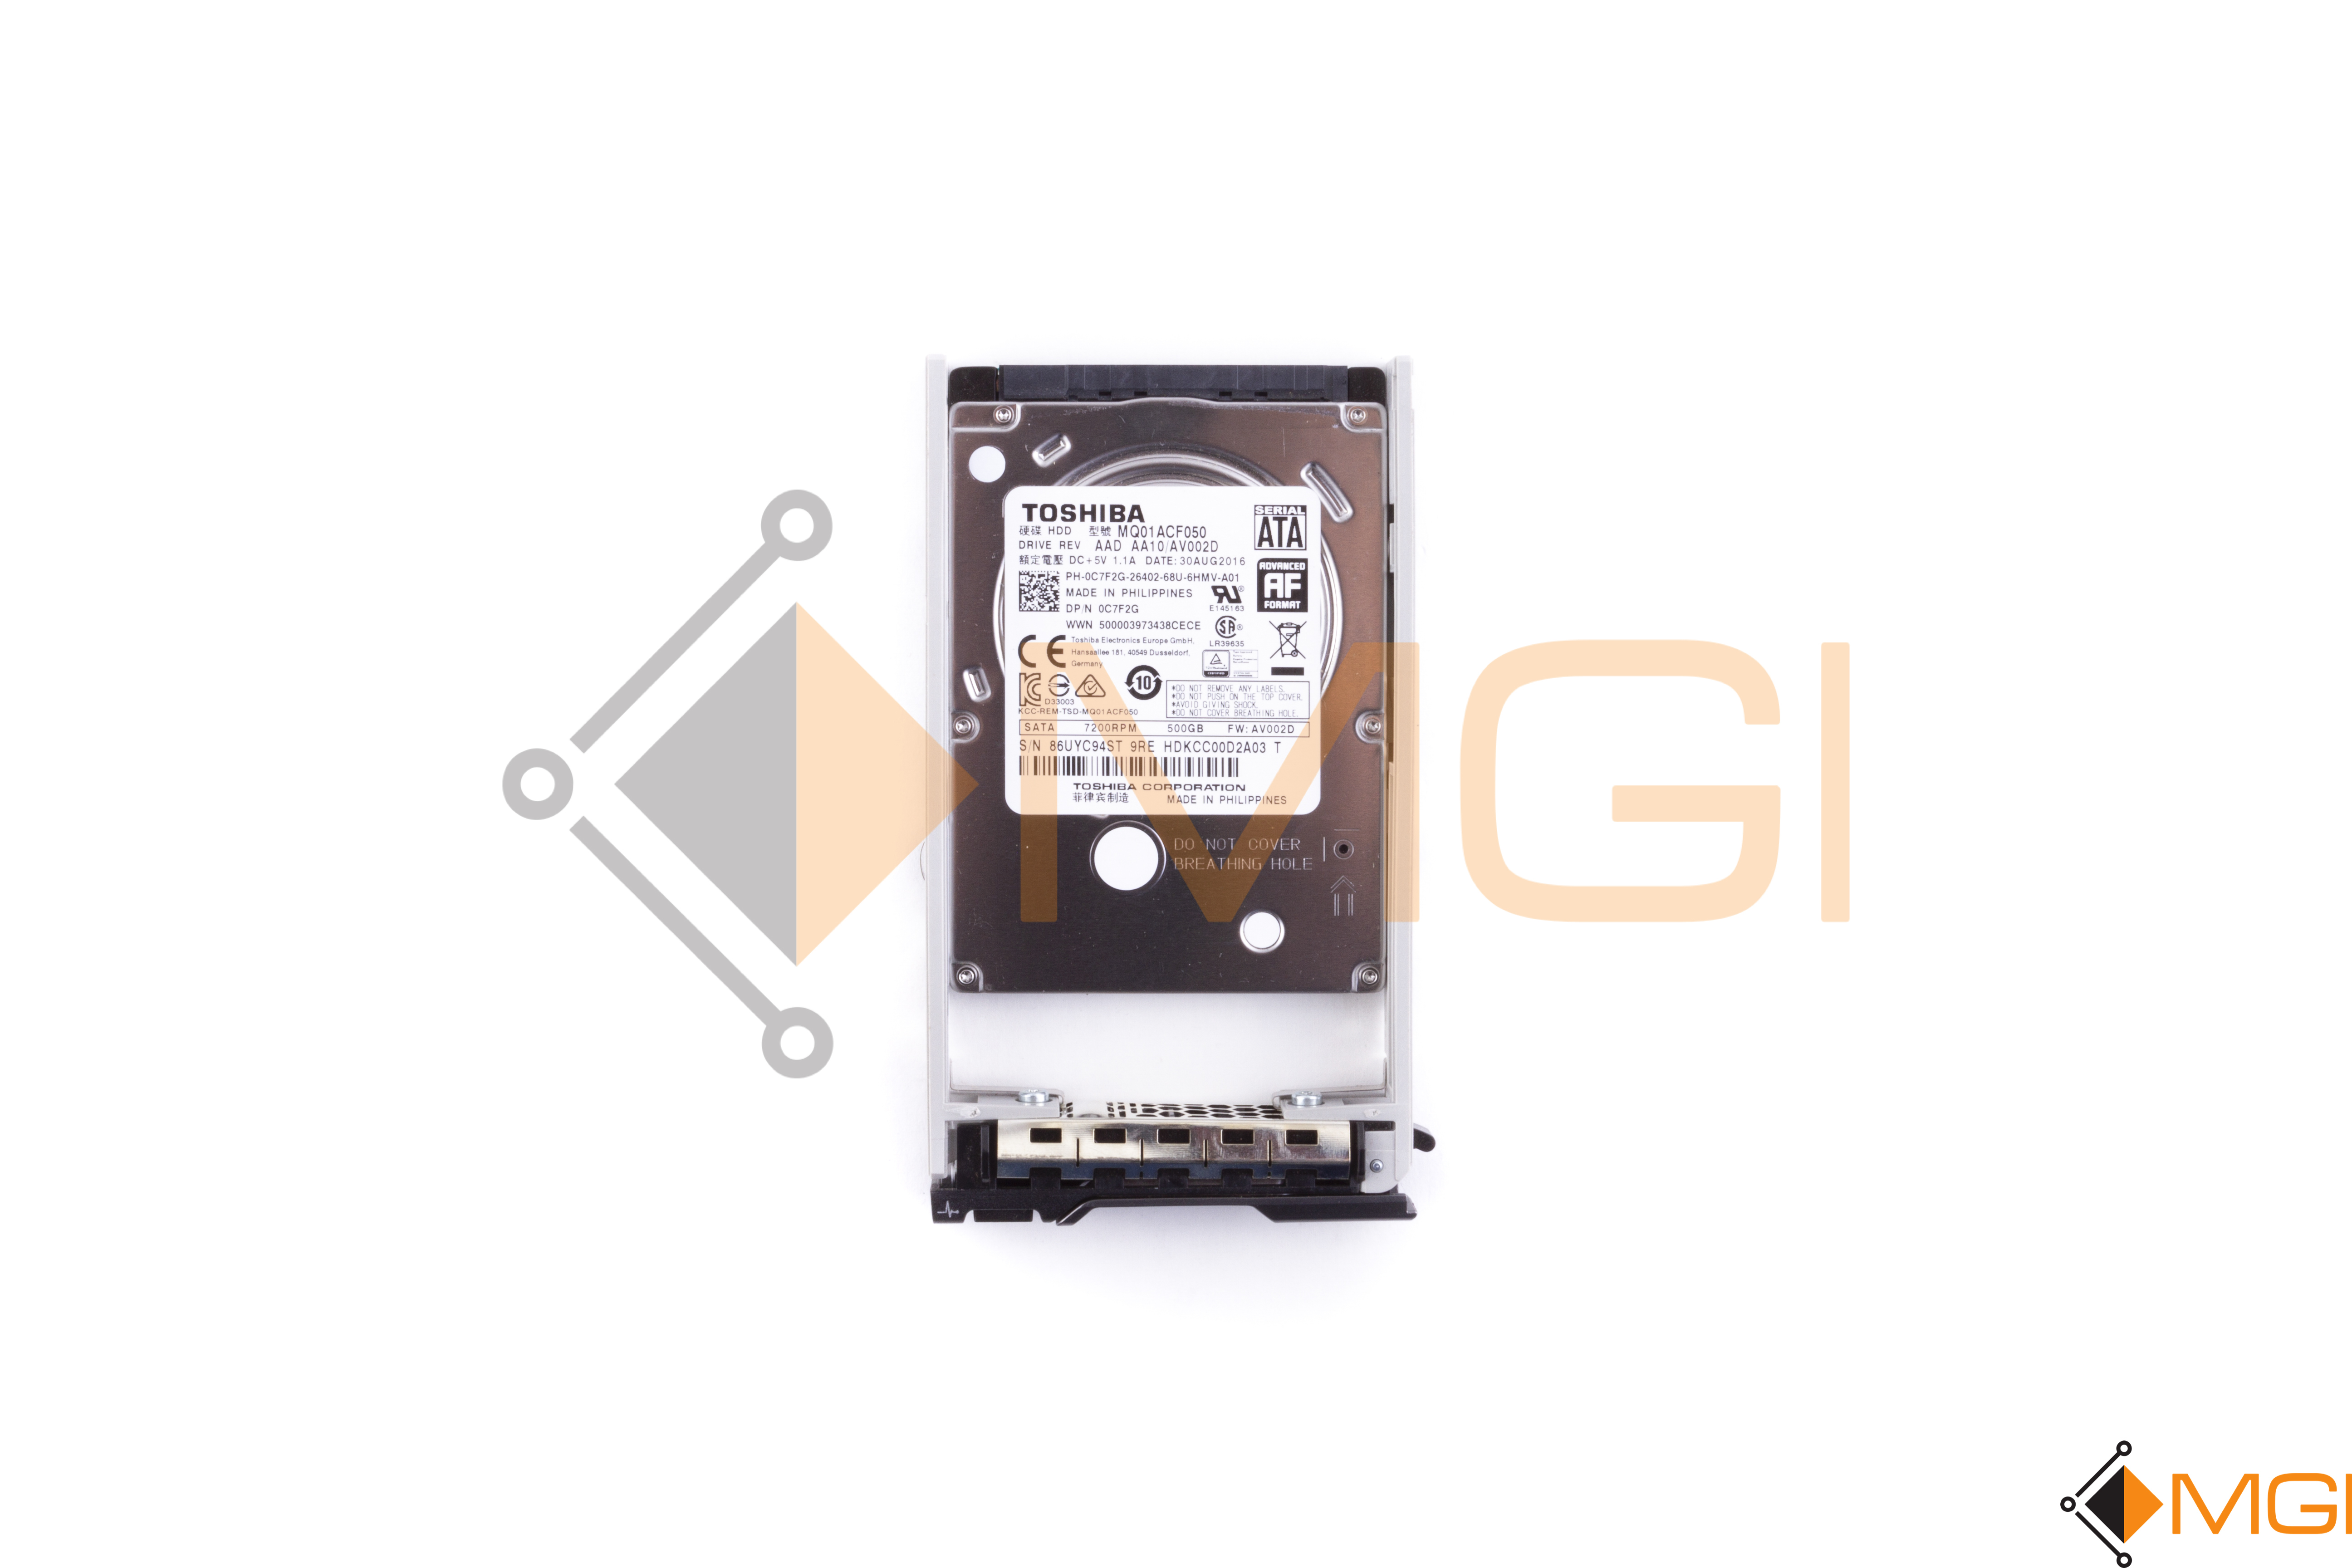 Details about TOSHIBA 500GB 7200RPM SATA HDD W/ R SERIES TRAY // C7F2G //  FREE SHIPPING